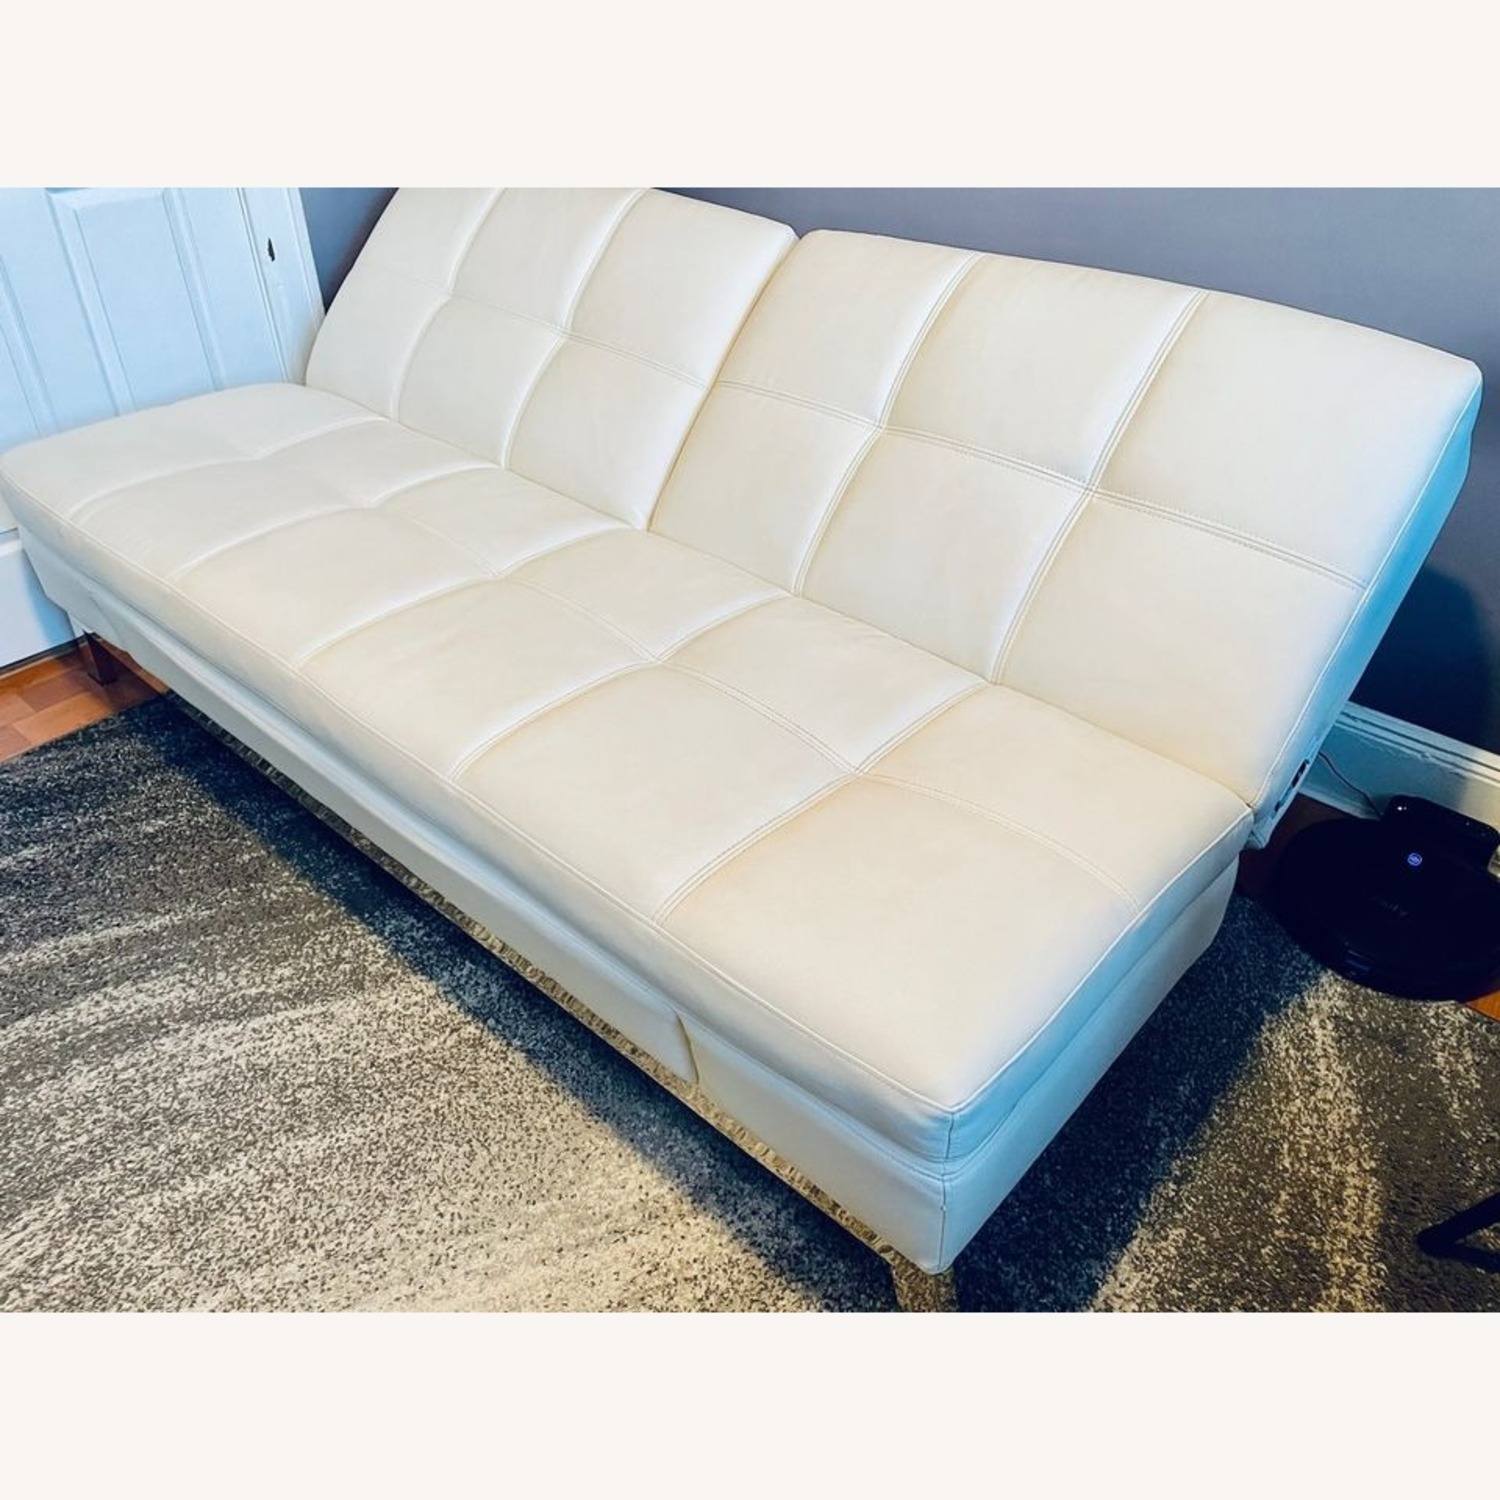 Coddle Toggle Convertible Couch Perl/White Leather - image-1